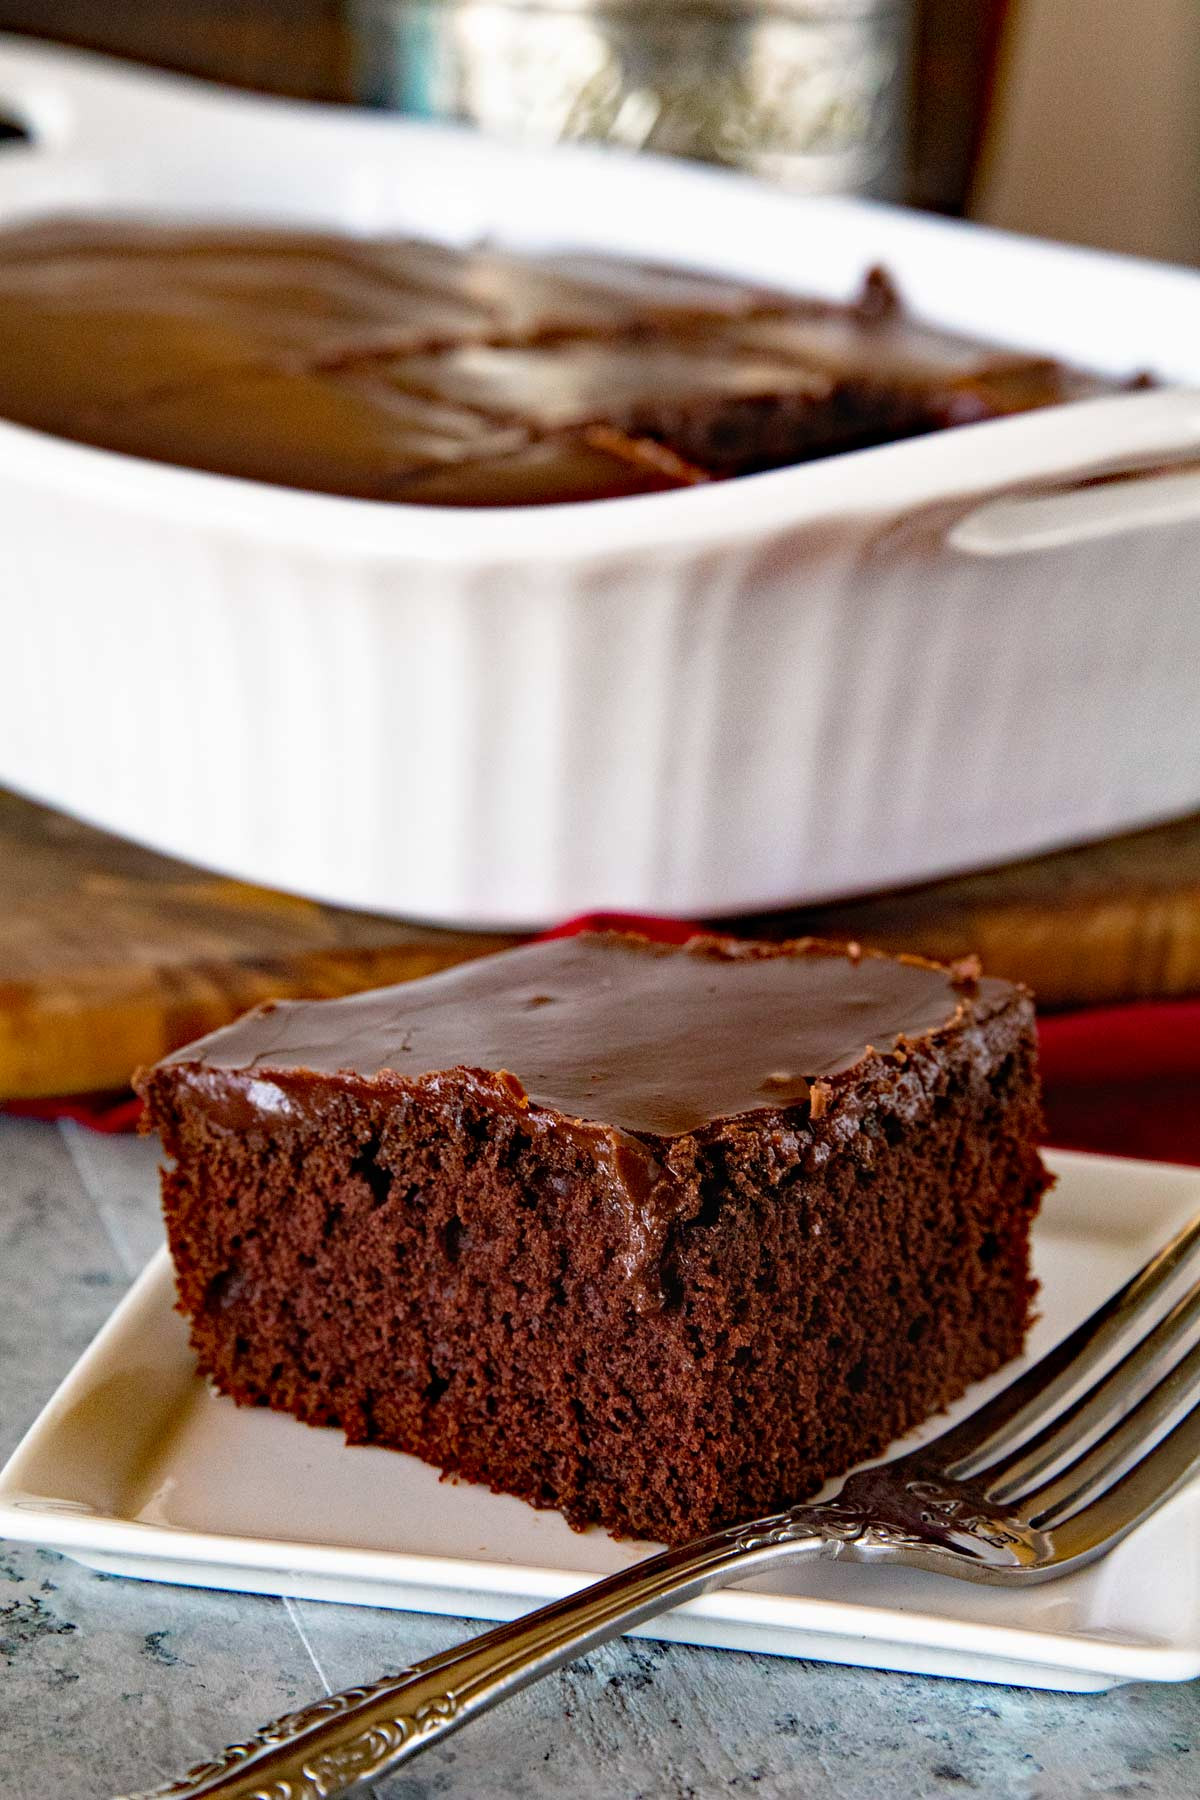 Cake Frosting Recipe  Homemade Chocolate Cake with Chocolate Frosting Julie s